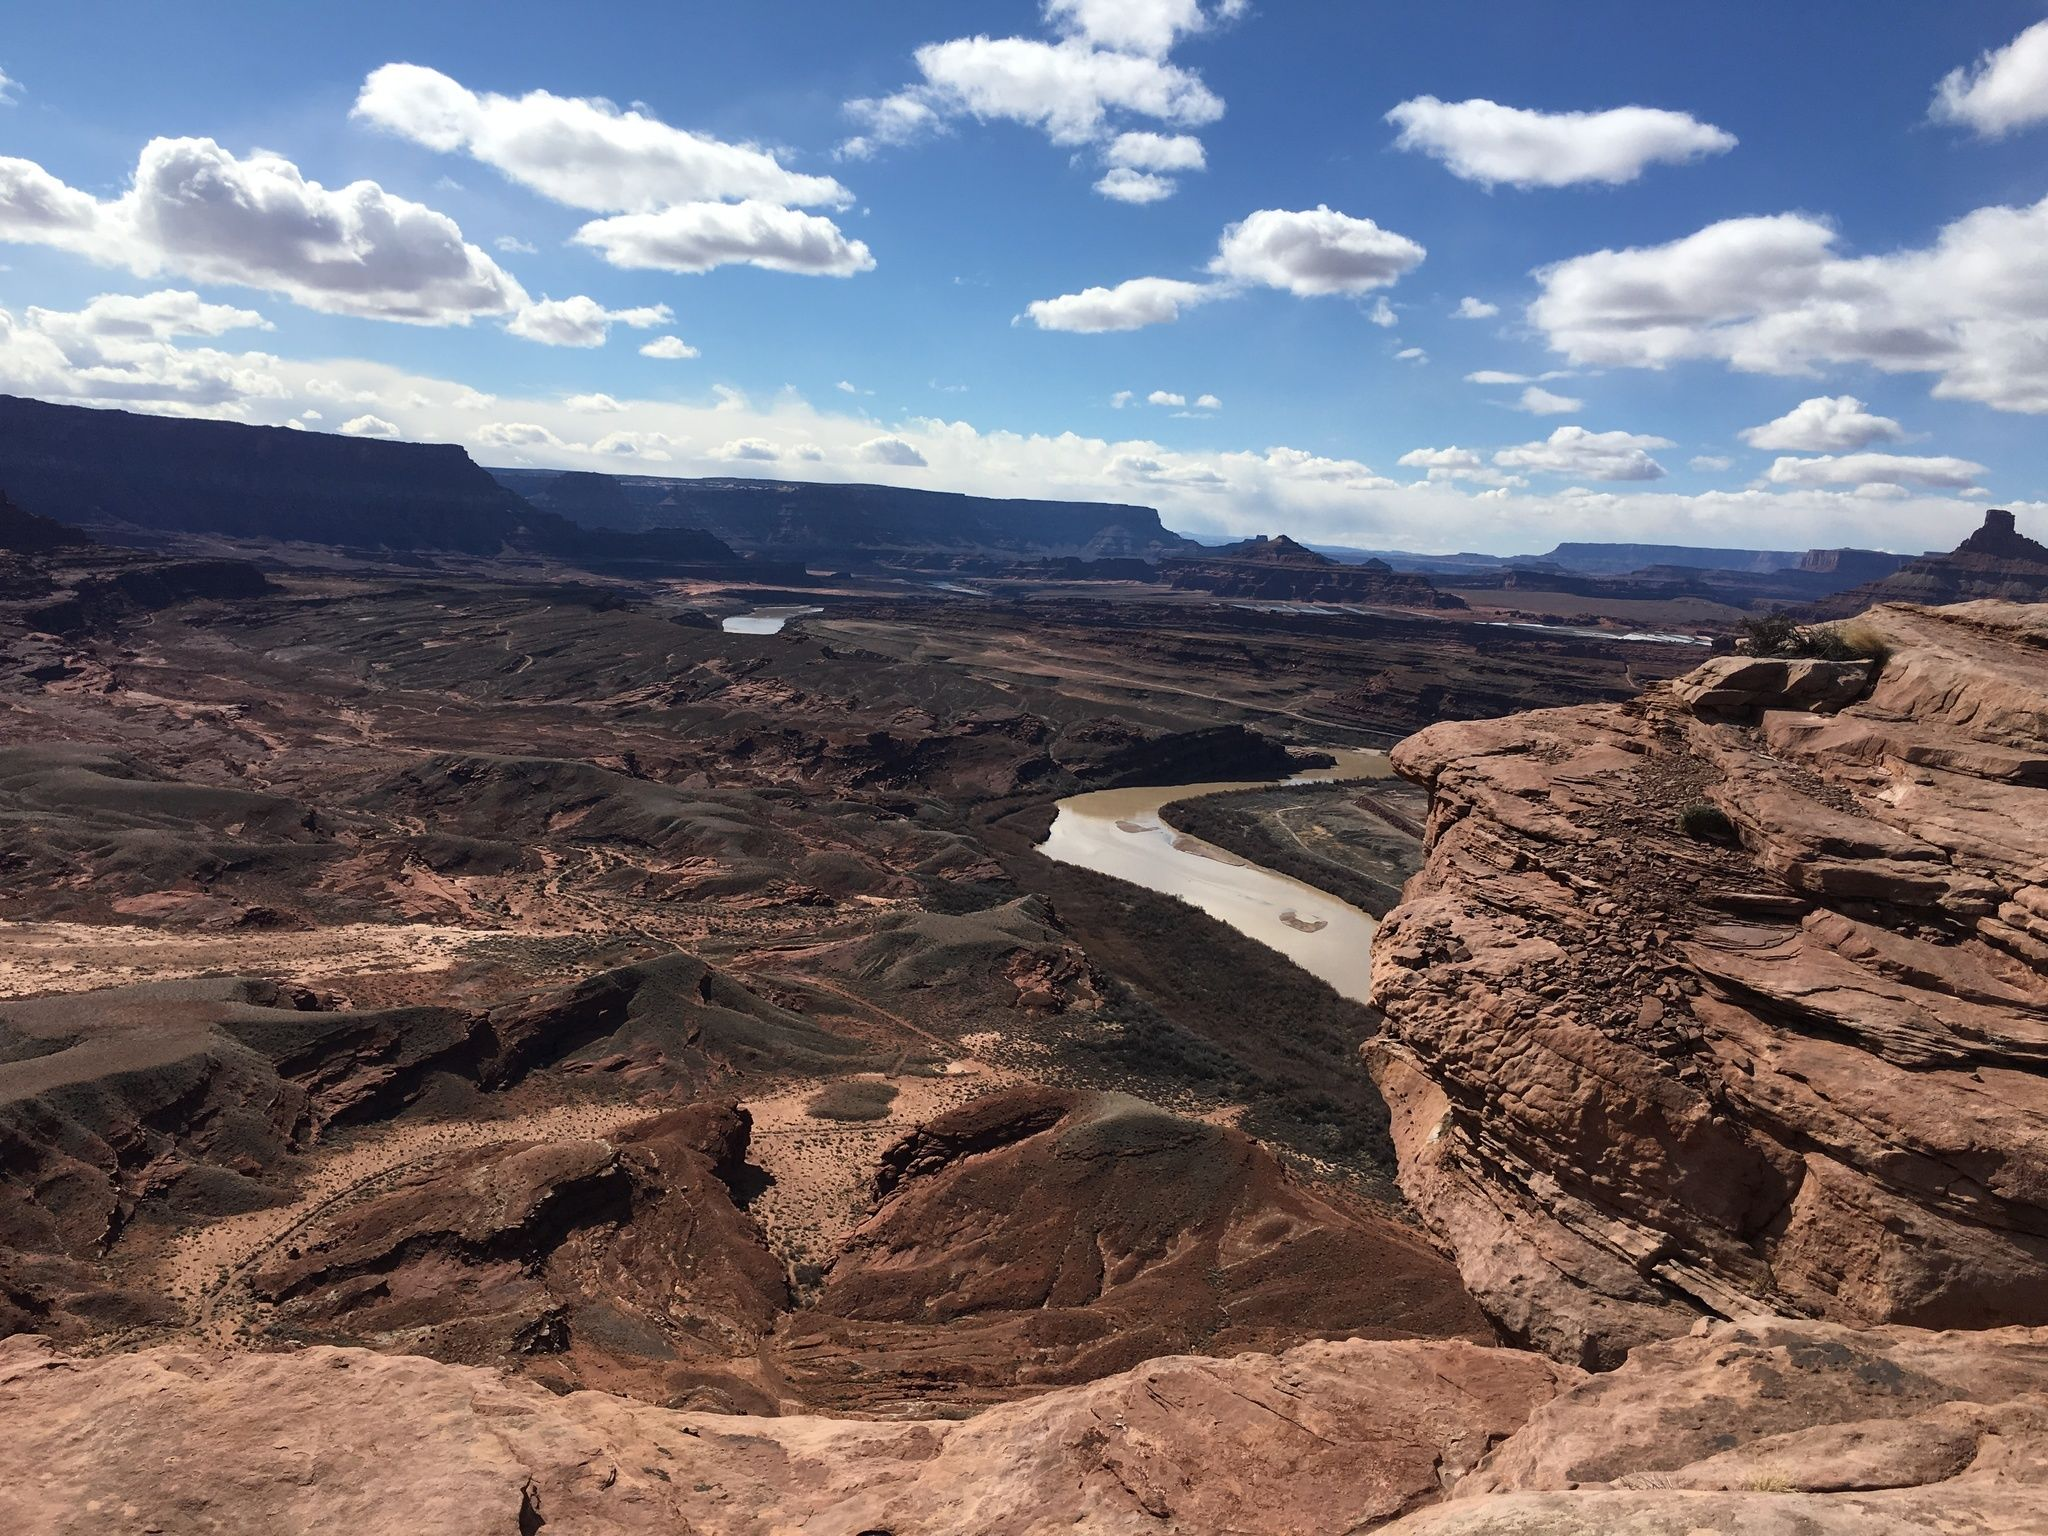 Jeep Near Me >> Best OHV / Off Road Driving Trails near Moab, Utah | AllTrails